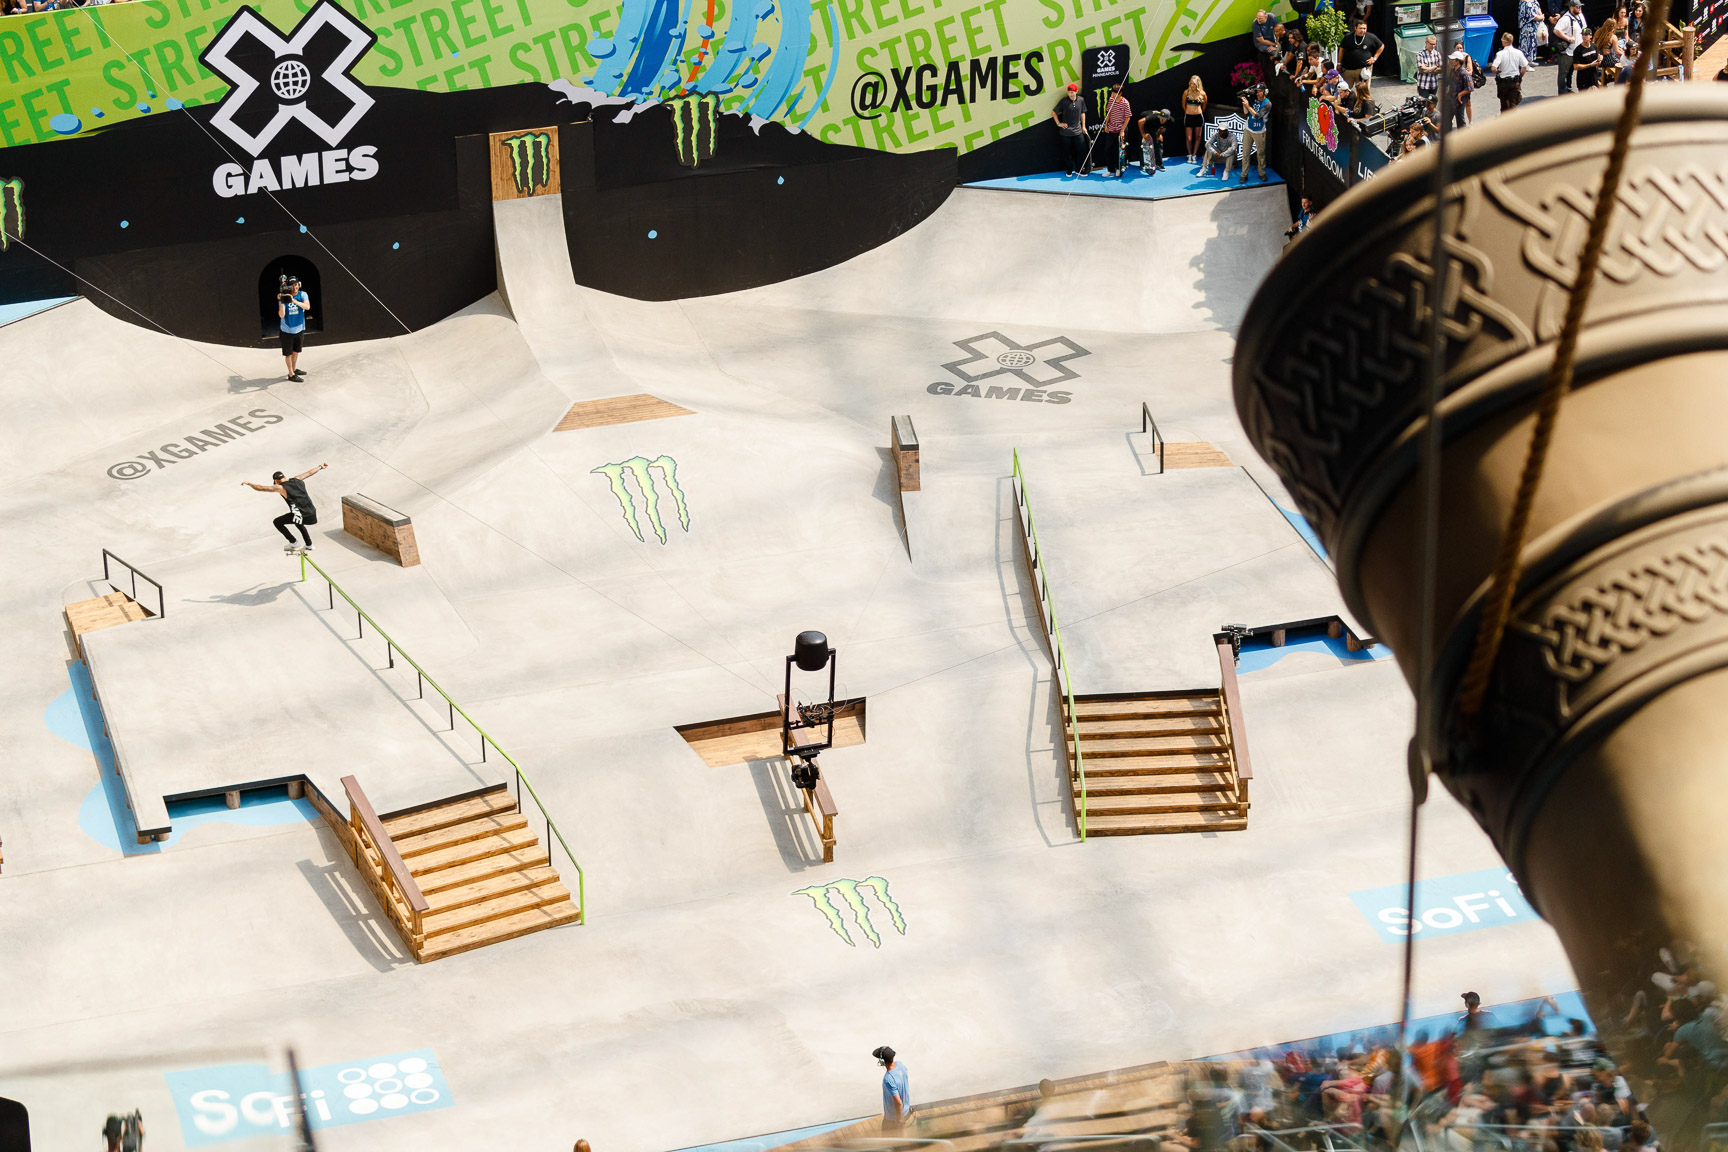 Nyjah Huston, Men's Skateboard Street final